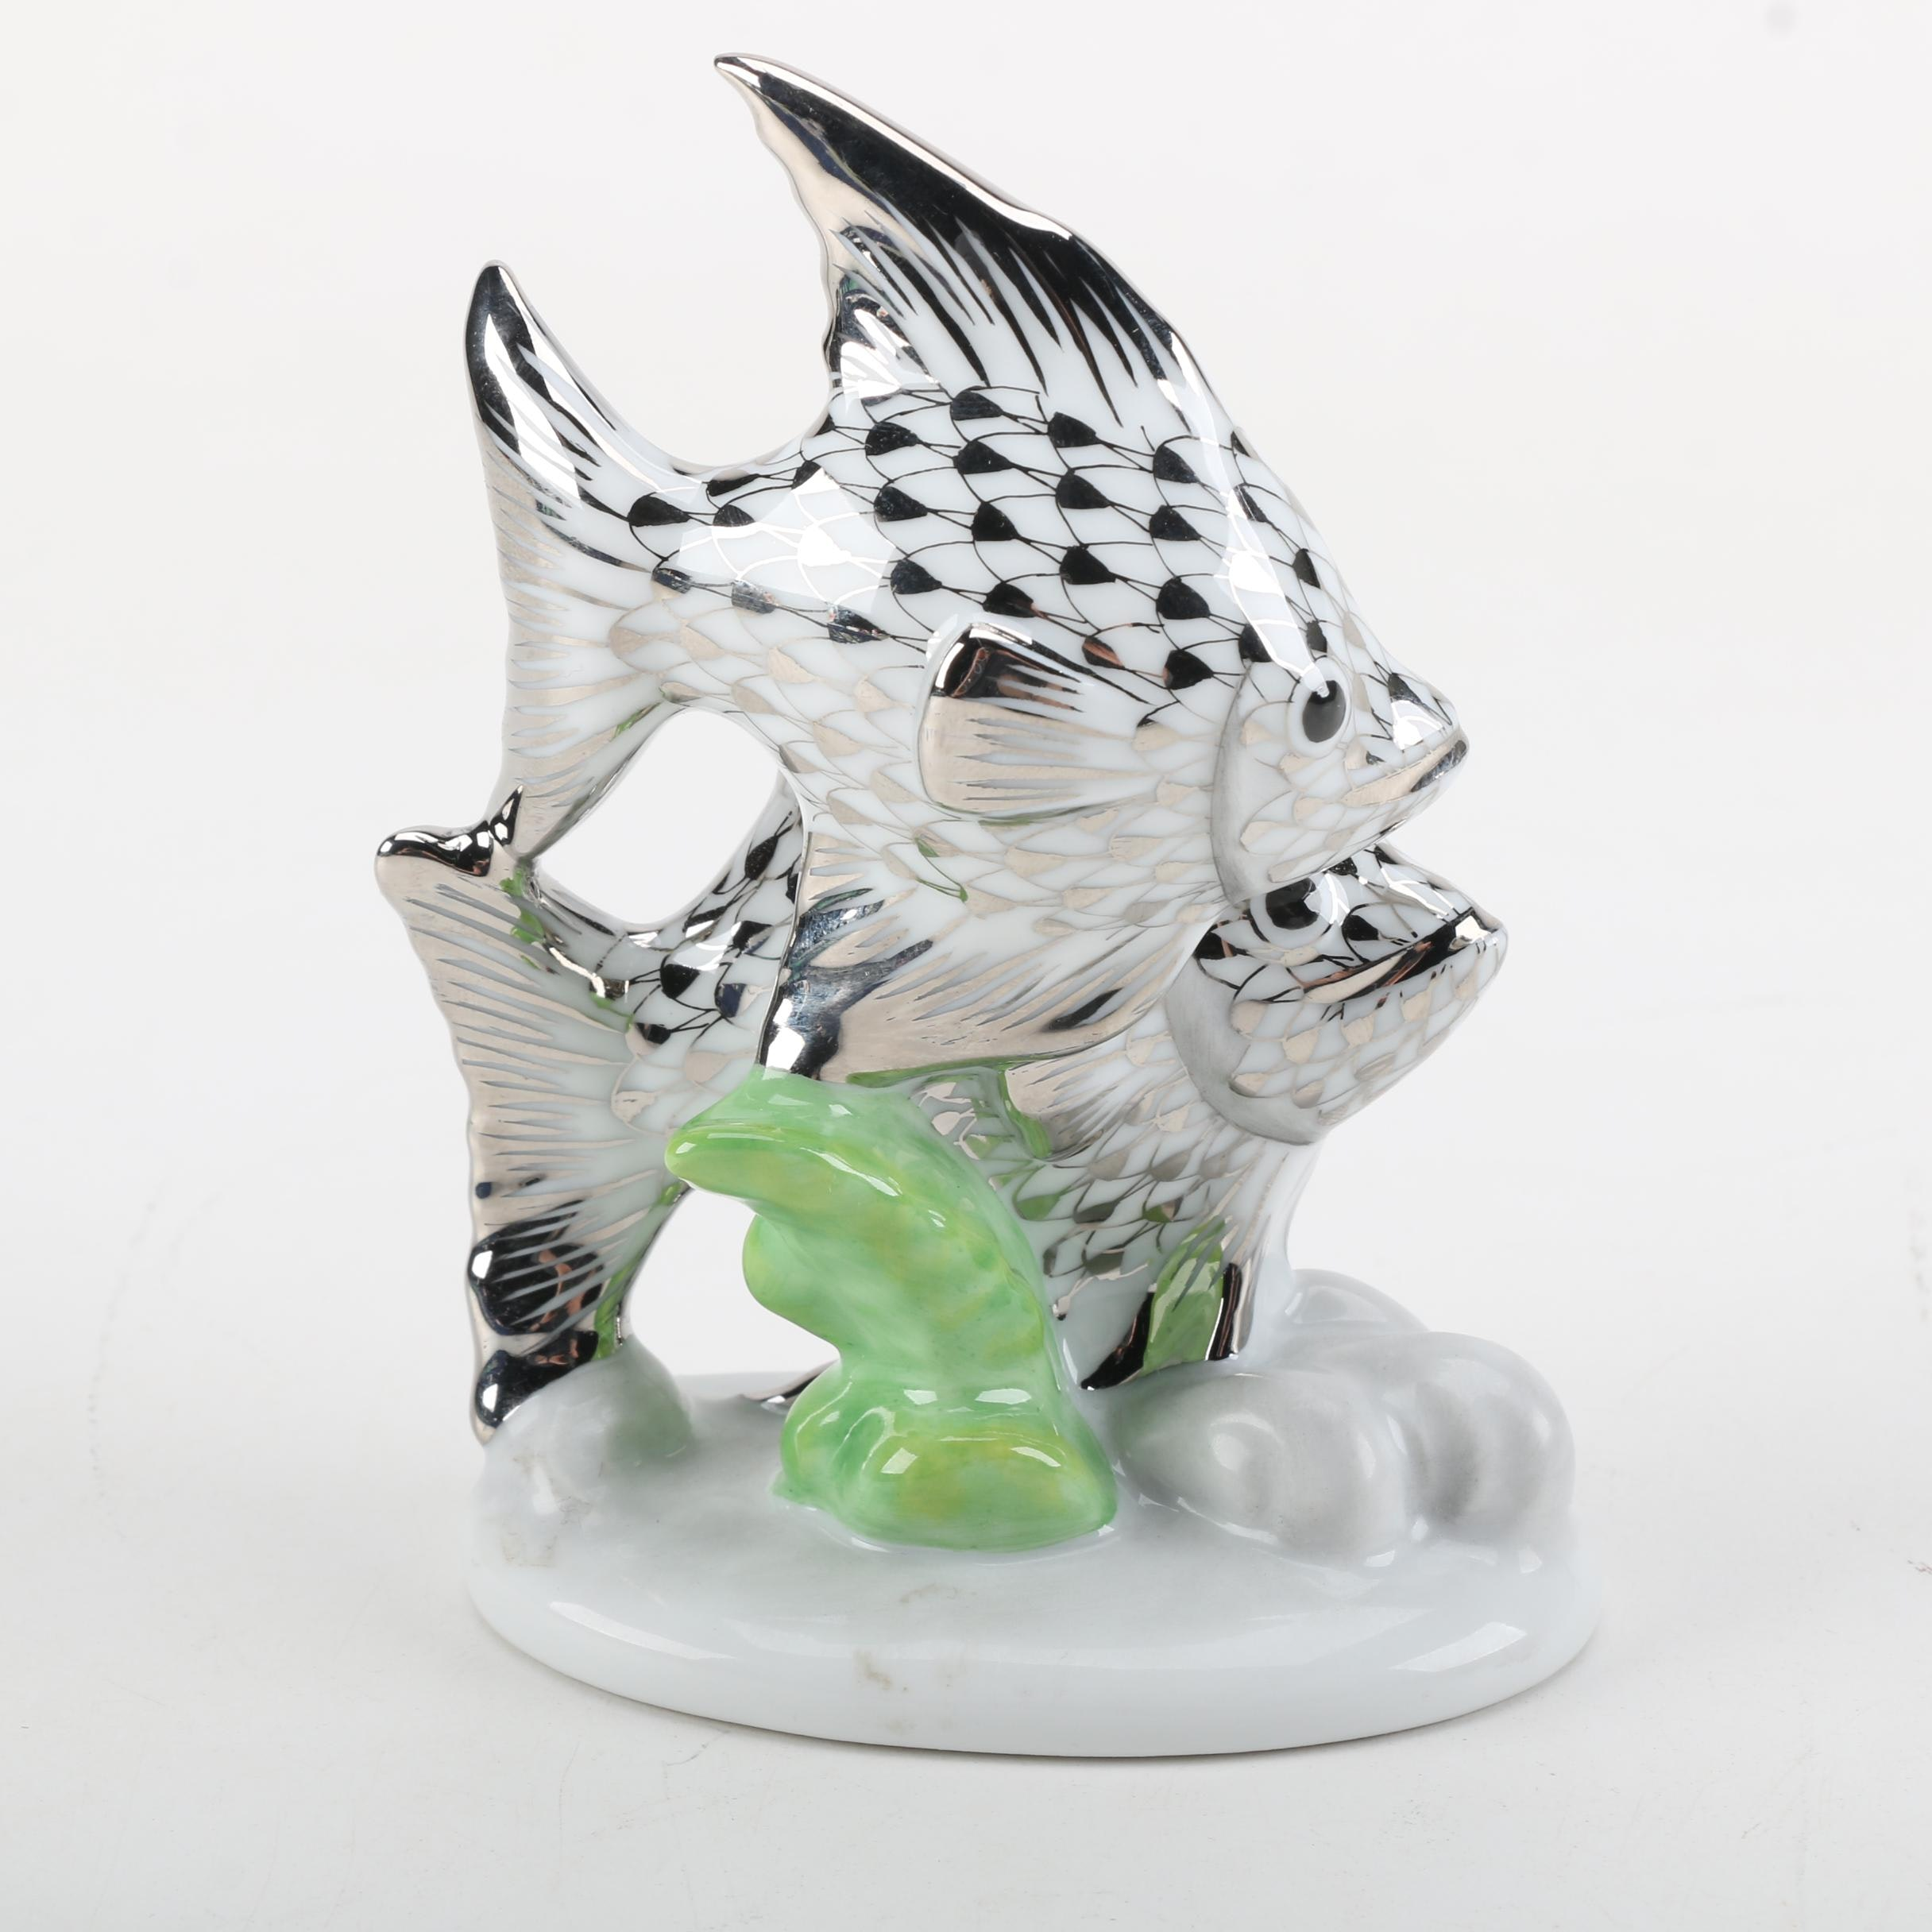 Herend Handmade and Hand-Painted Silver Tone Porcelain Pair of Fish Figurine